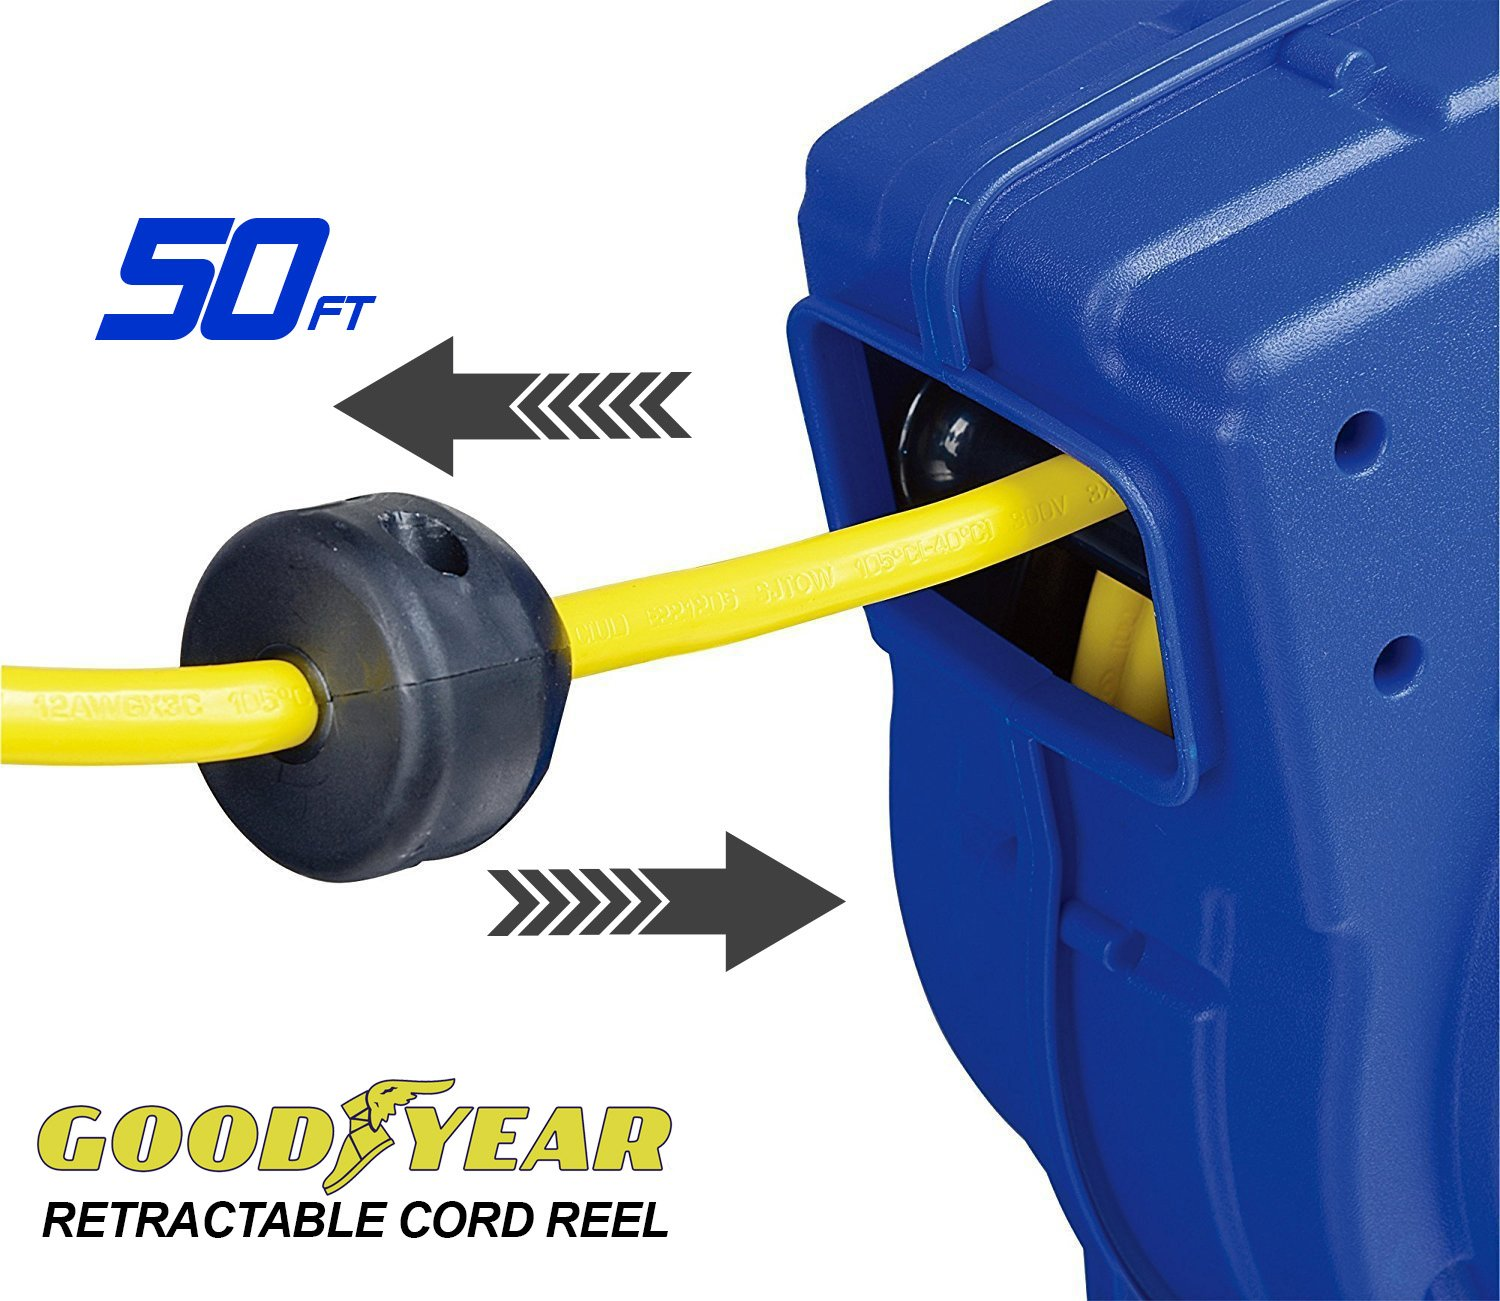 Goodyear 27527153G Enclosed Retractable Air Compressor/Water Hose Reel with 3/8 in. x 50 ft. Hybrid Polymer Hose, Max. 300PSI by Goodyear (Image #4)